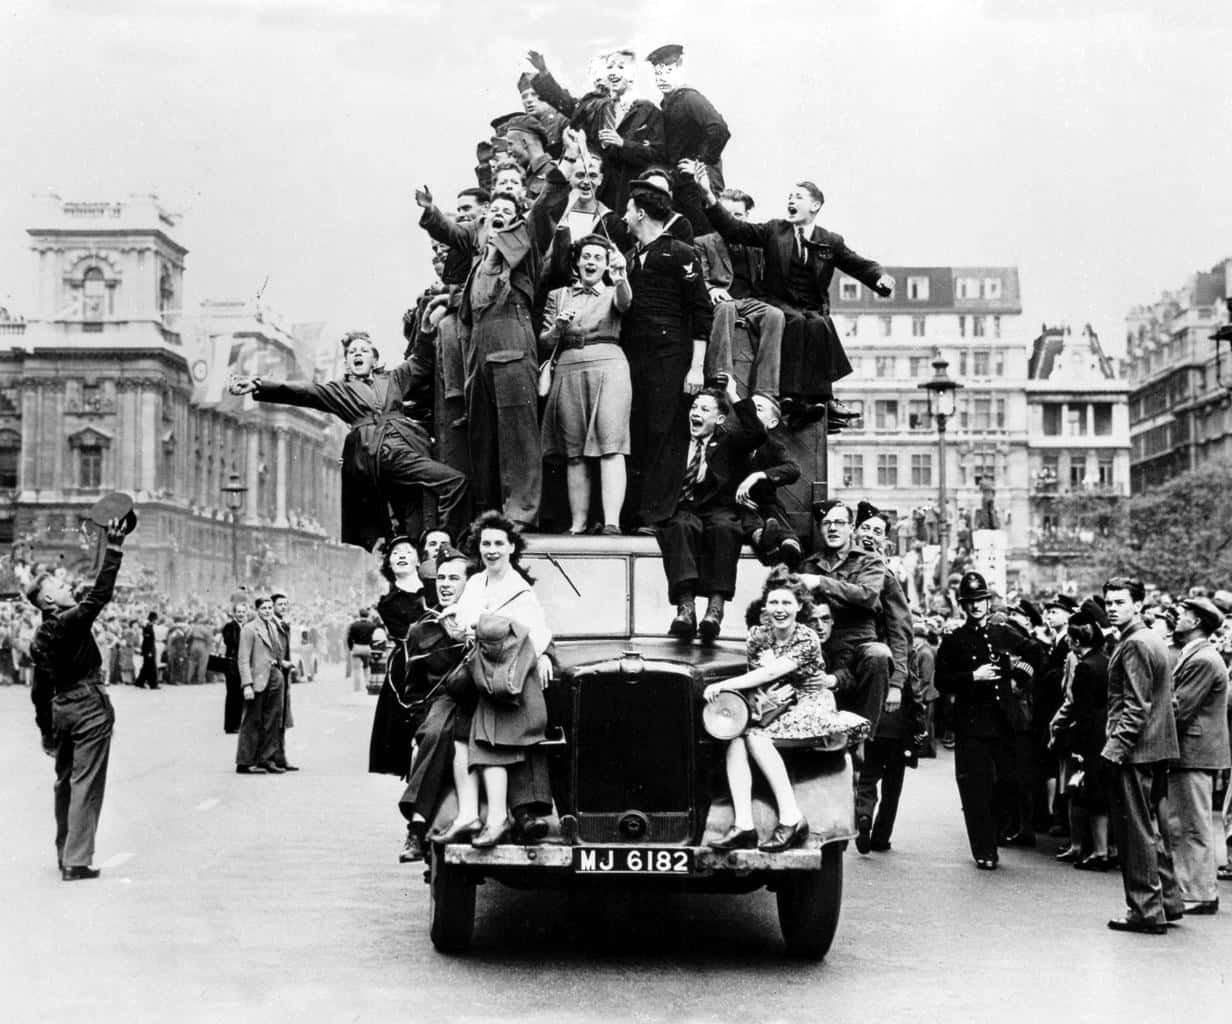 YPP proud to be an official partner of the VE Day 75th Anniversary